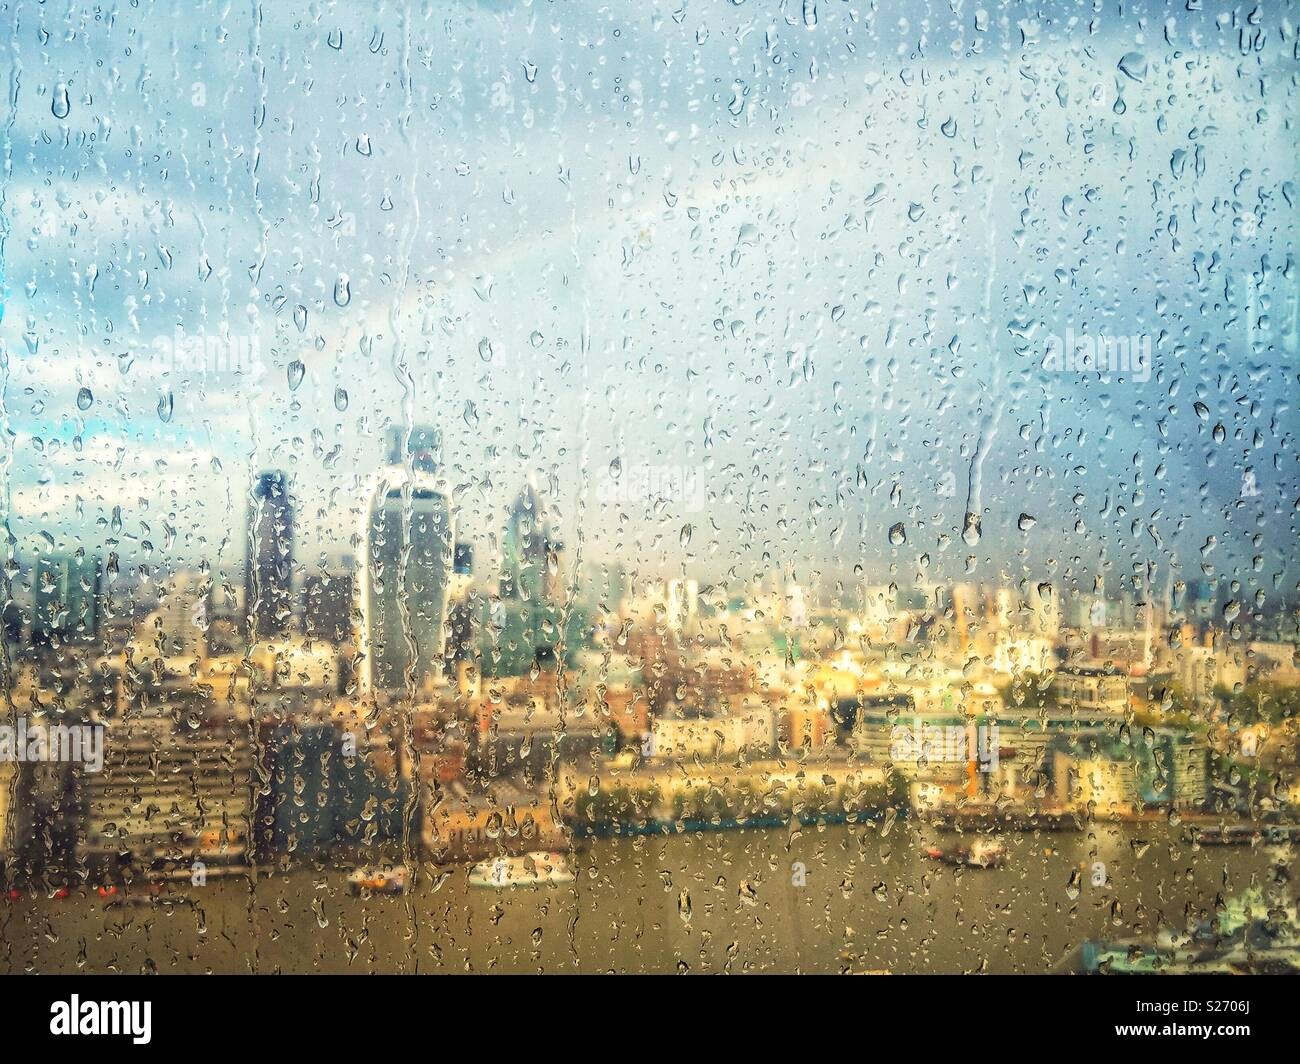 Rain on the window of The Shard, London, UK, looking across the Thames towards Fenchurch Street and over the City. A rainbow lights up the sky as the sun breaks through, lighting up the city below. - Stock Image